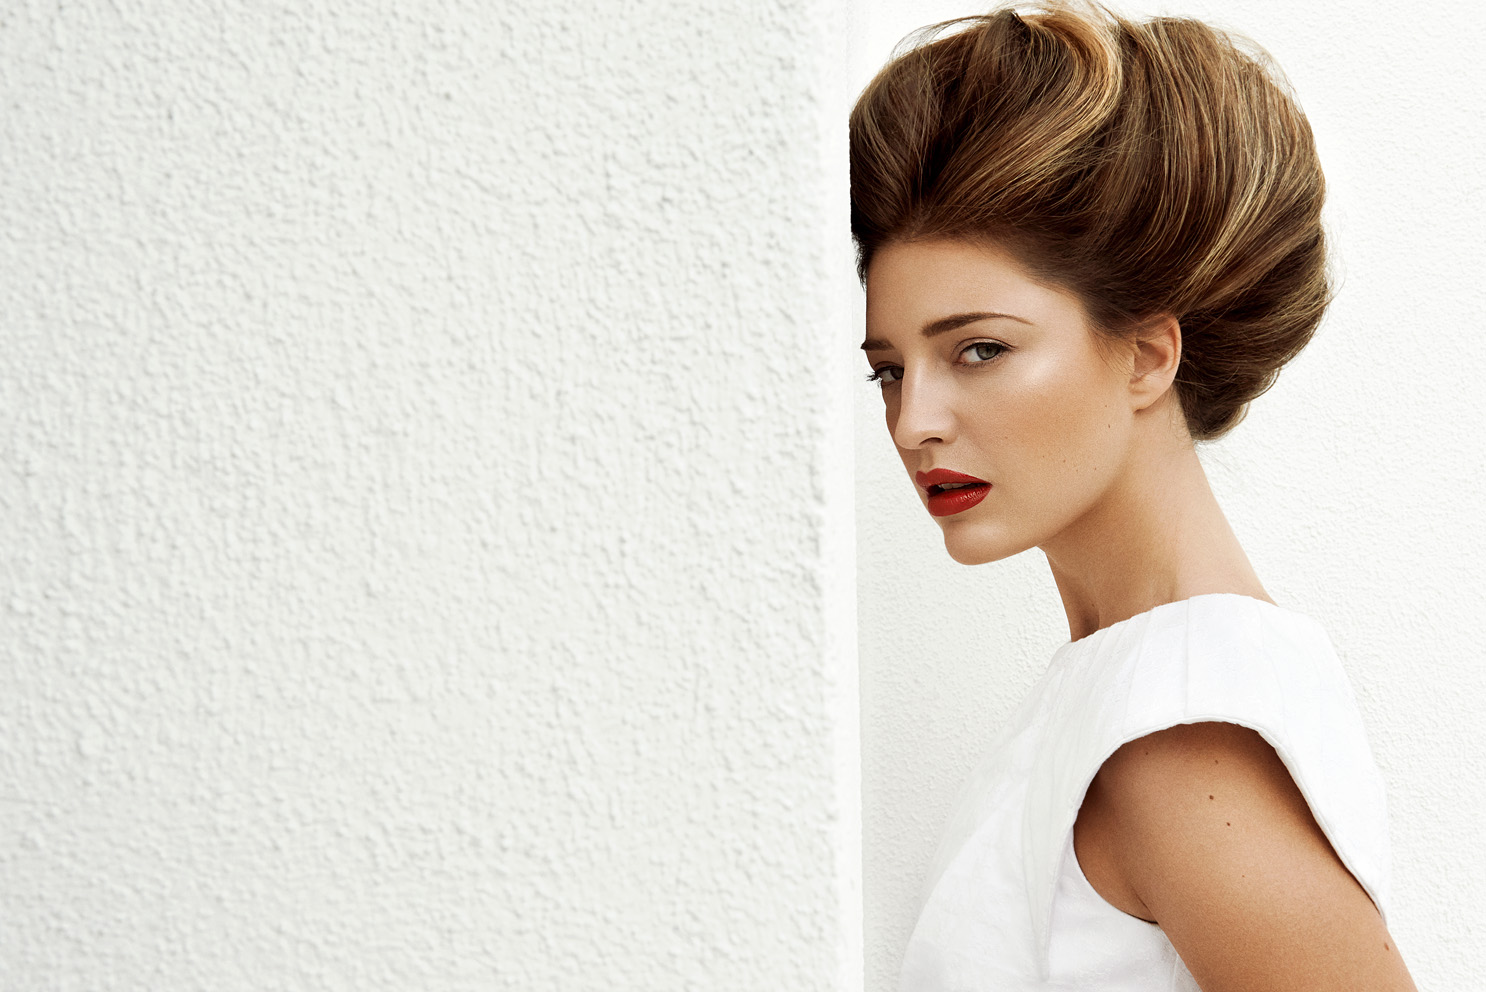 Model hair updo big hair volume Maxima fashion editorial red lipstick